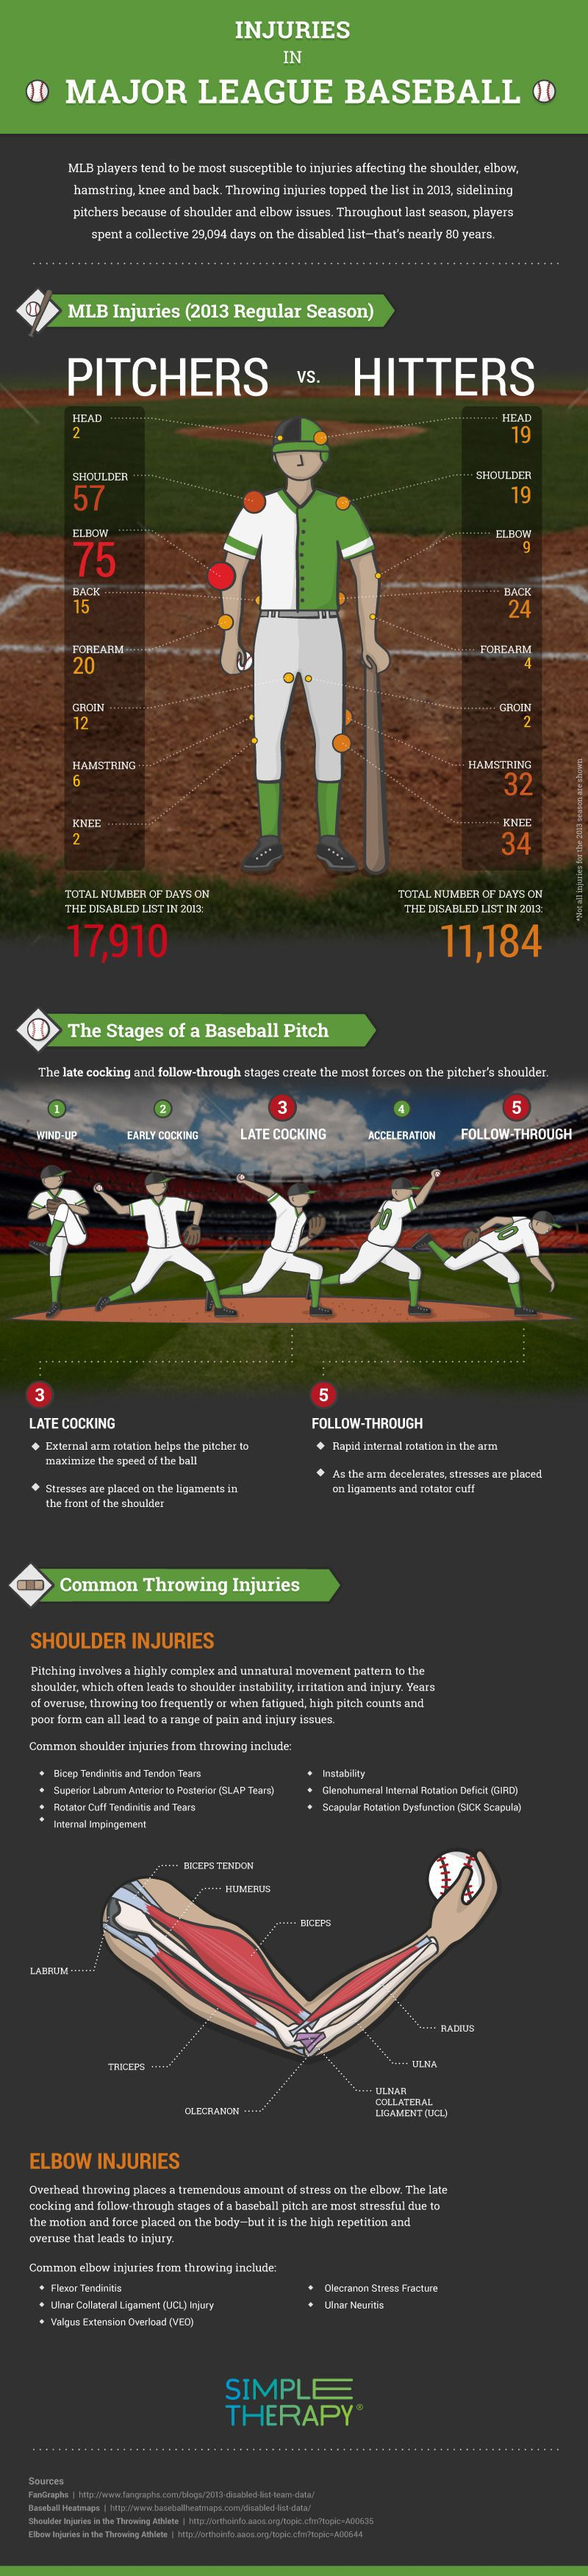 injuries in major league baseball infograph